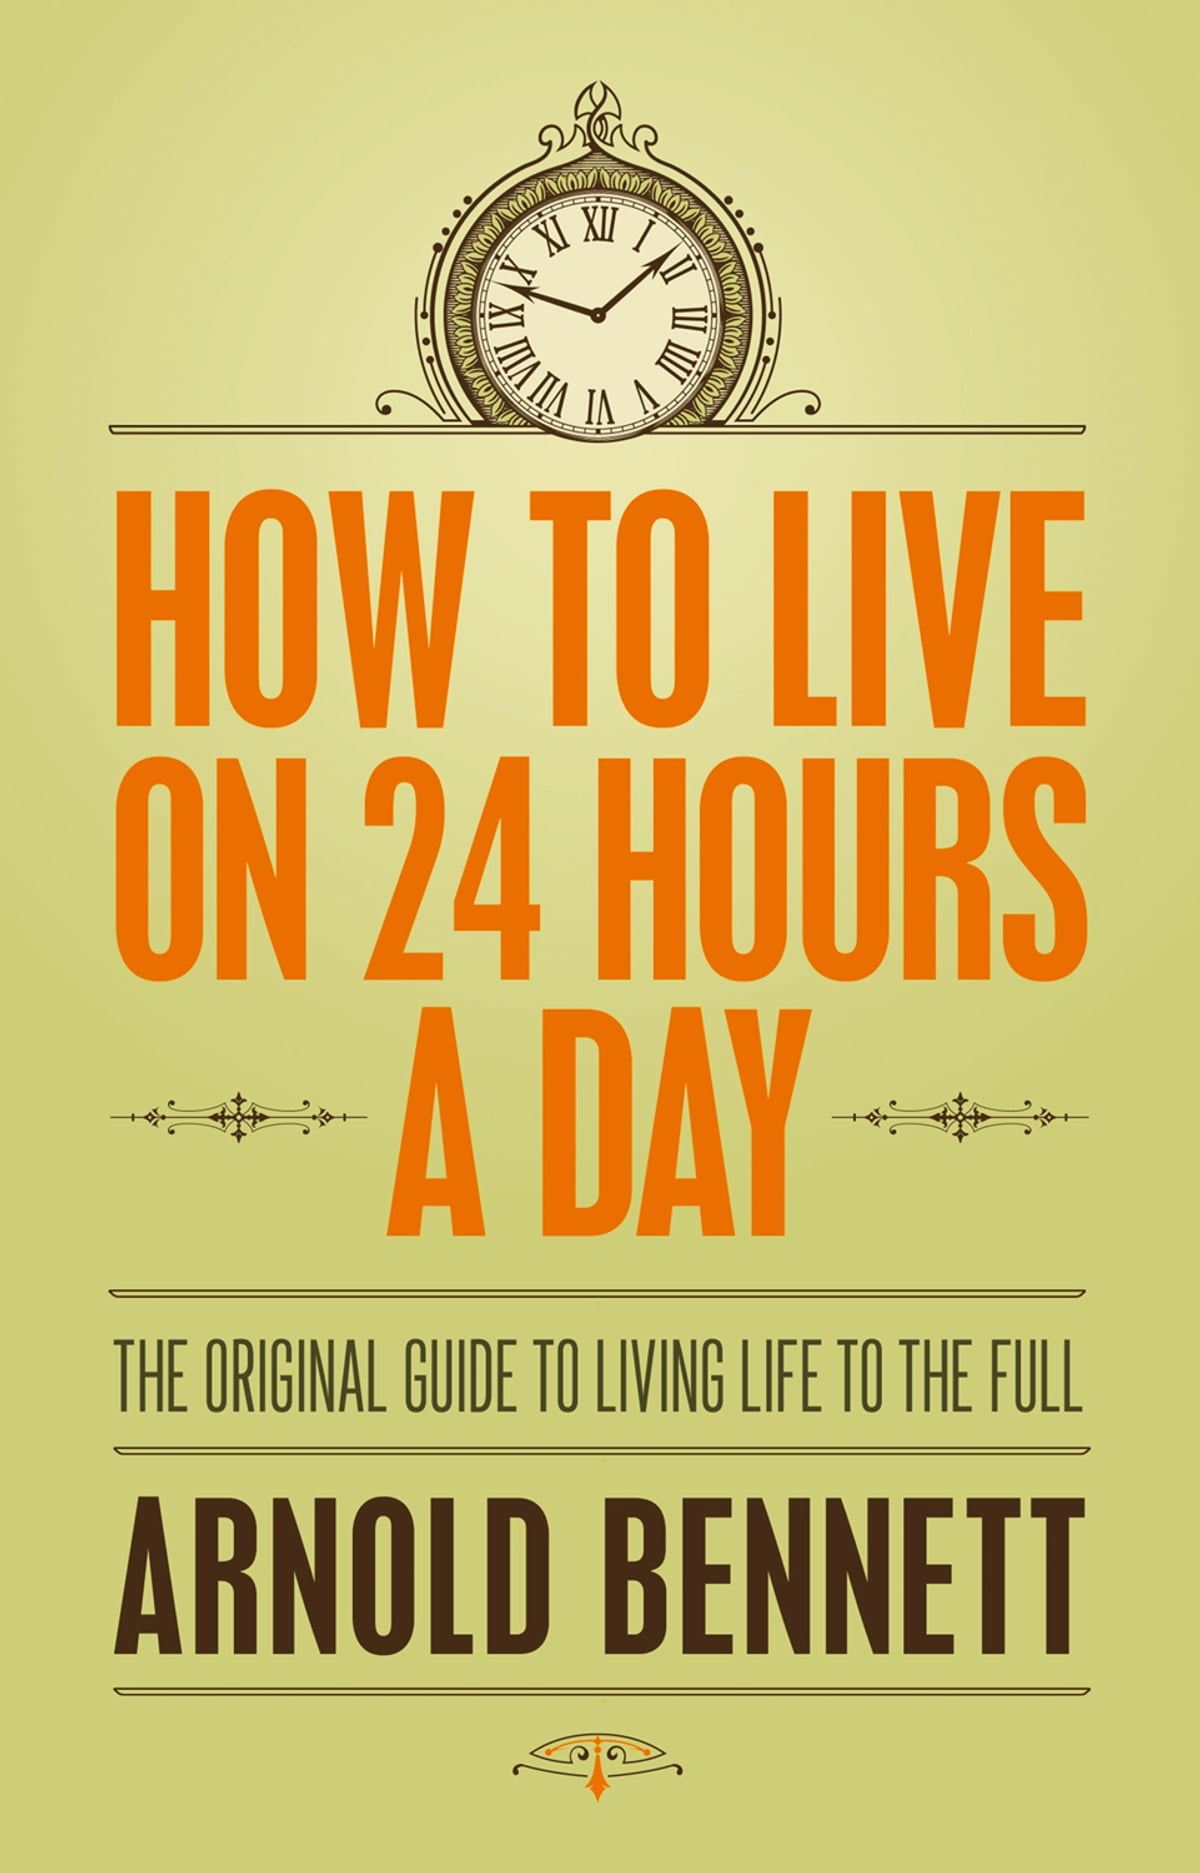 How to Live on 24 Hours a Day  Arnold Bennett notes by Kingston S. Lim